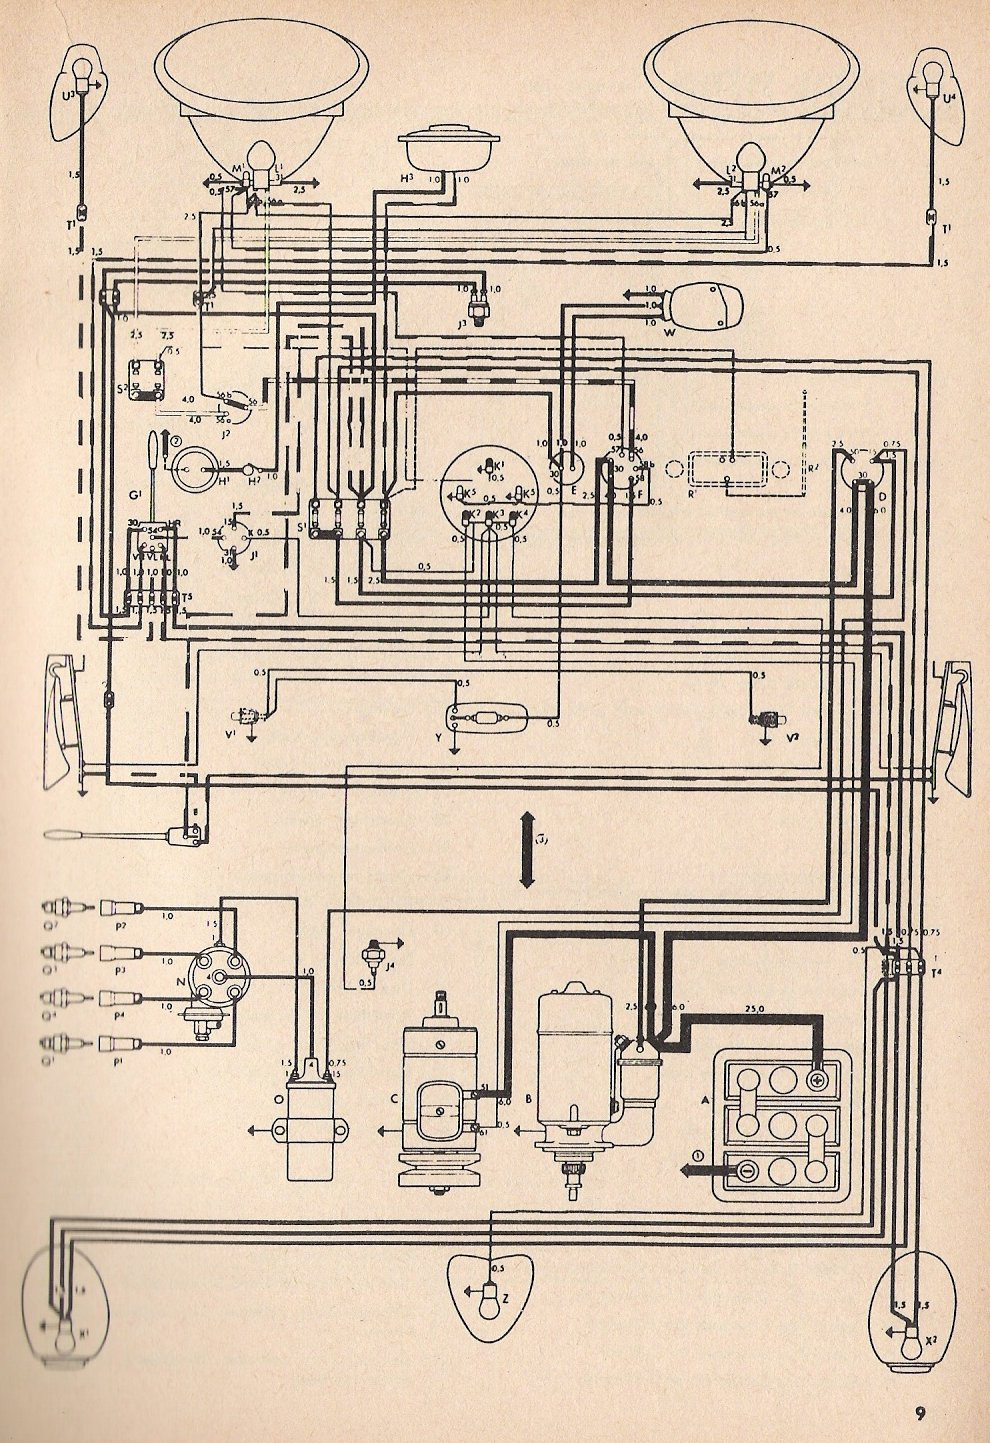 1969 Vw 1600 Wiring Diagram Detailed Schematic Diagrams Thing Thesamba Com Type 1 Golf